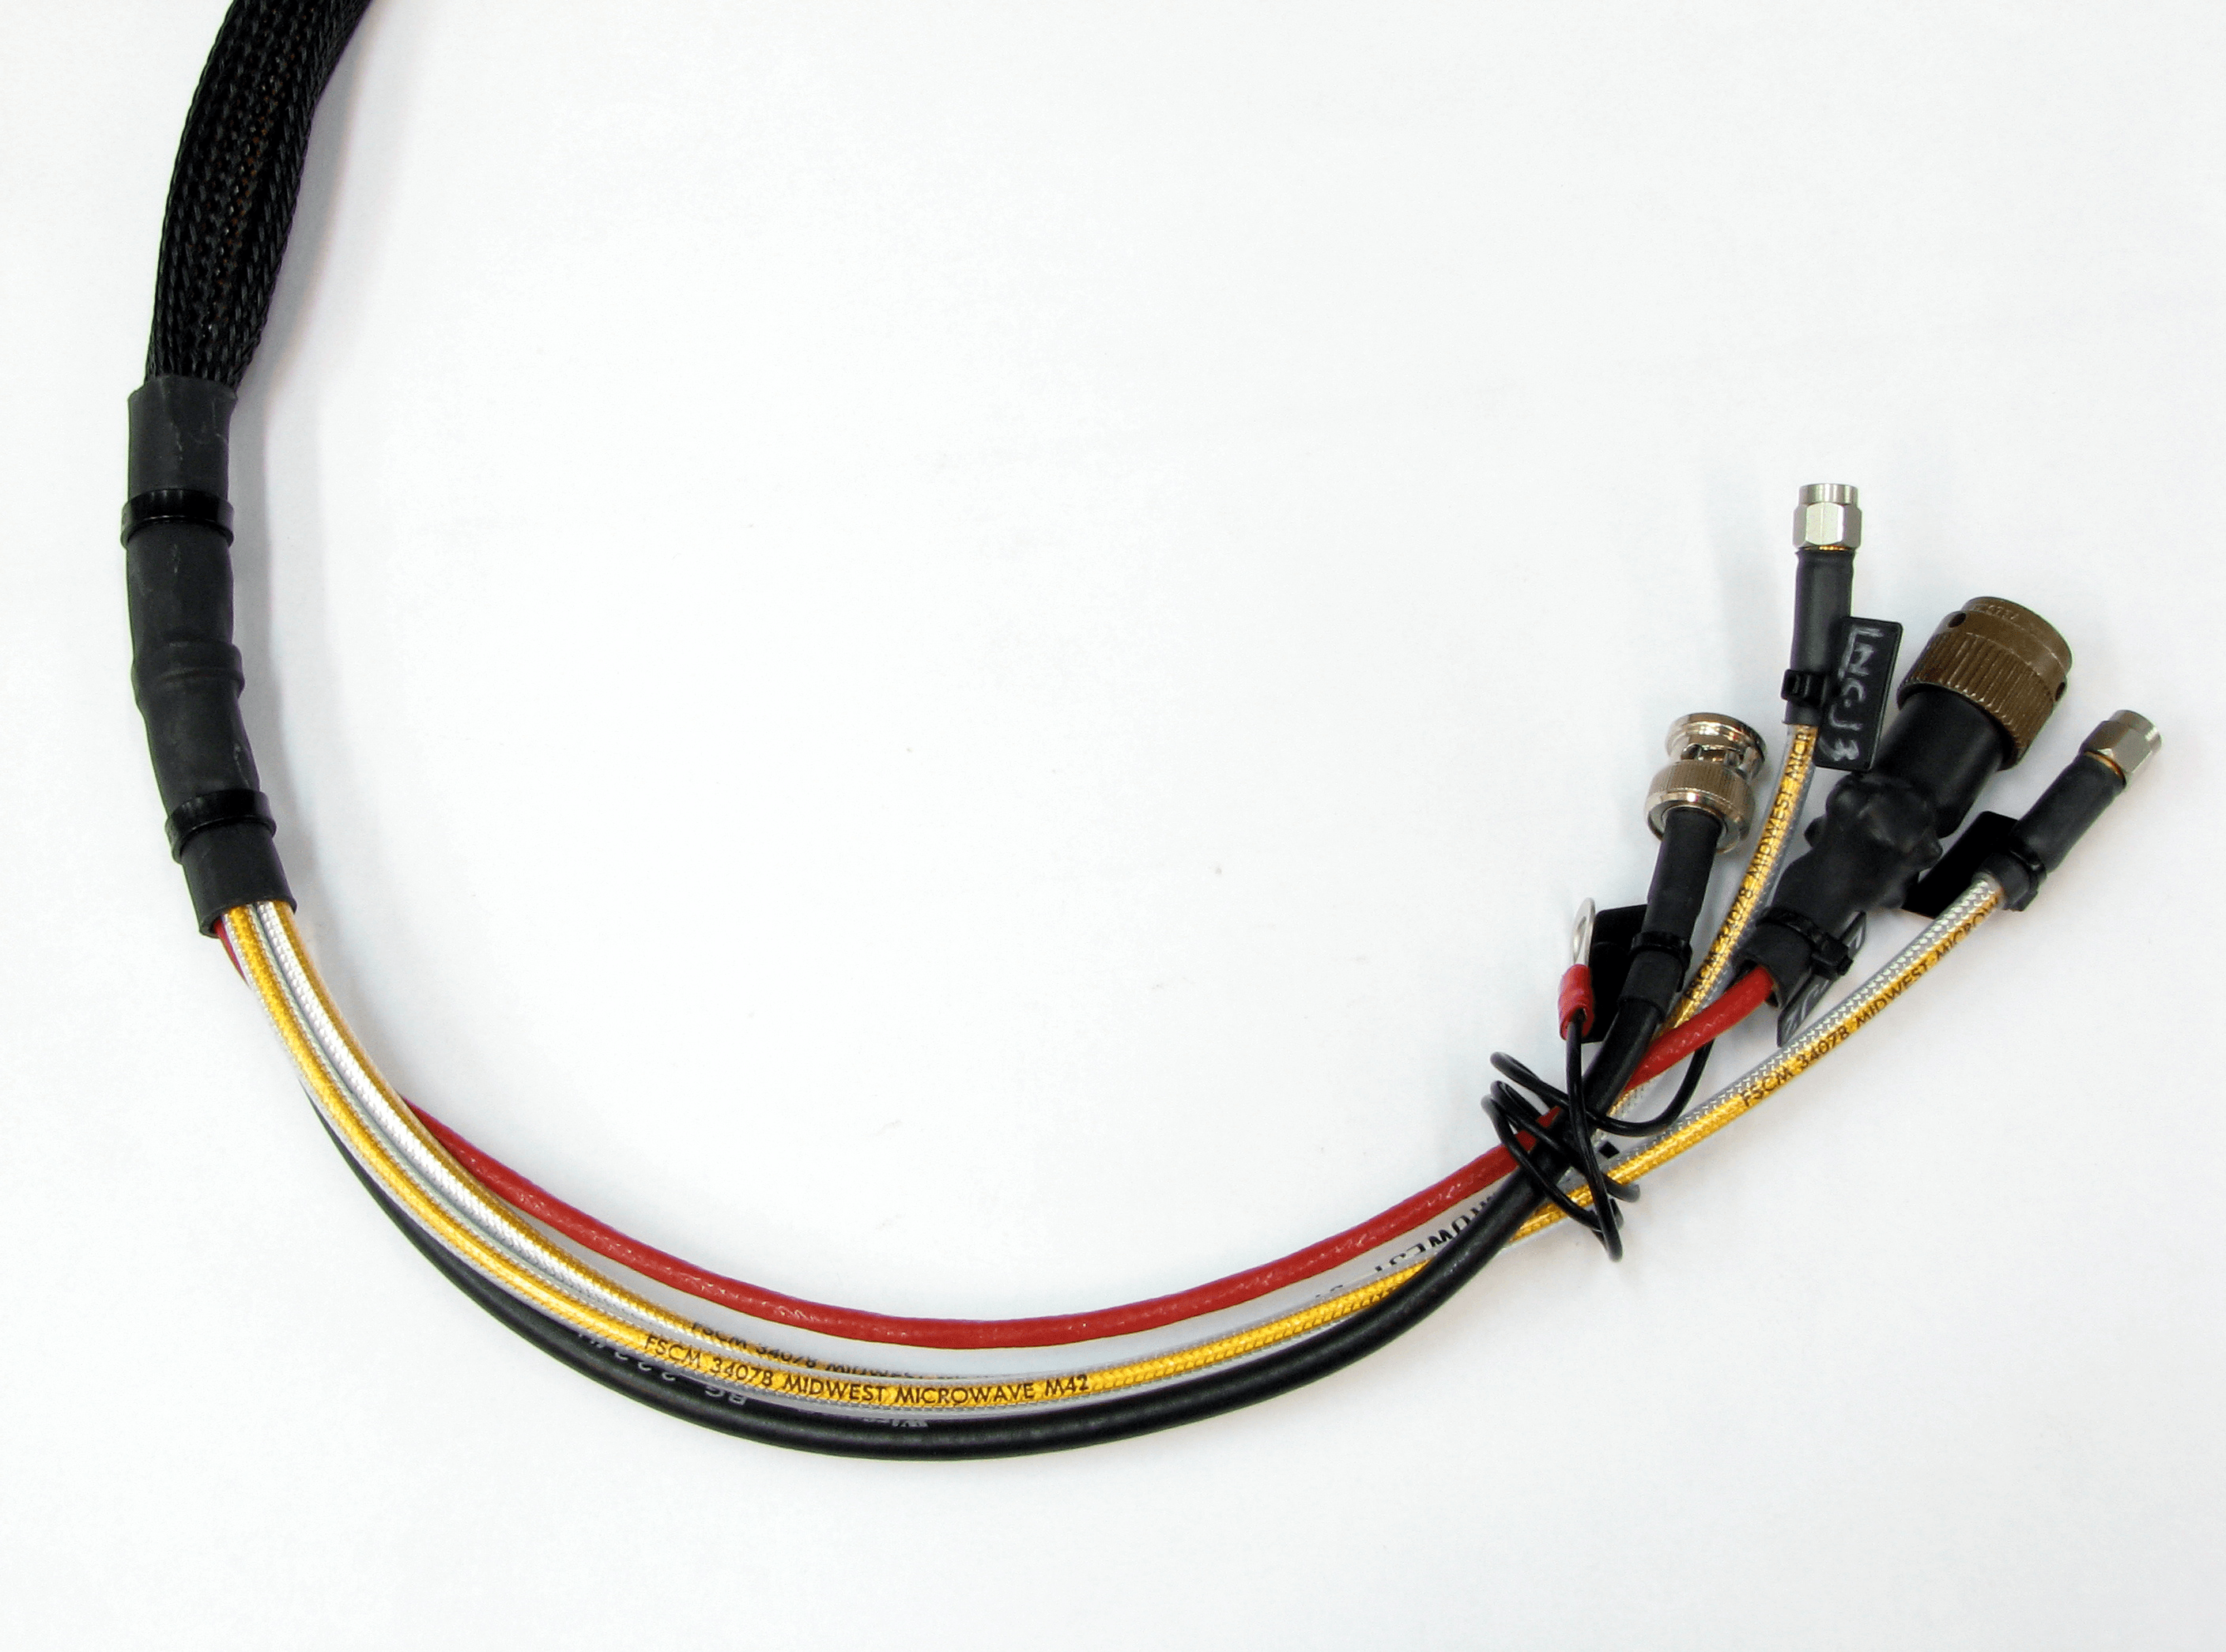 wire harness assembly training & reference guide